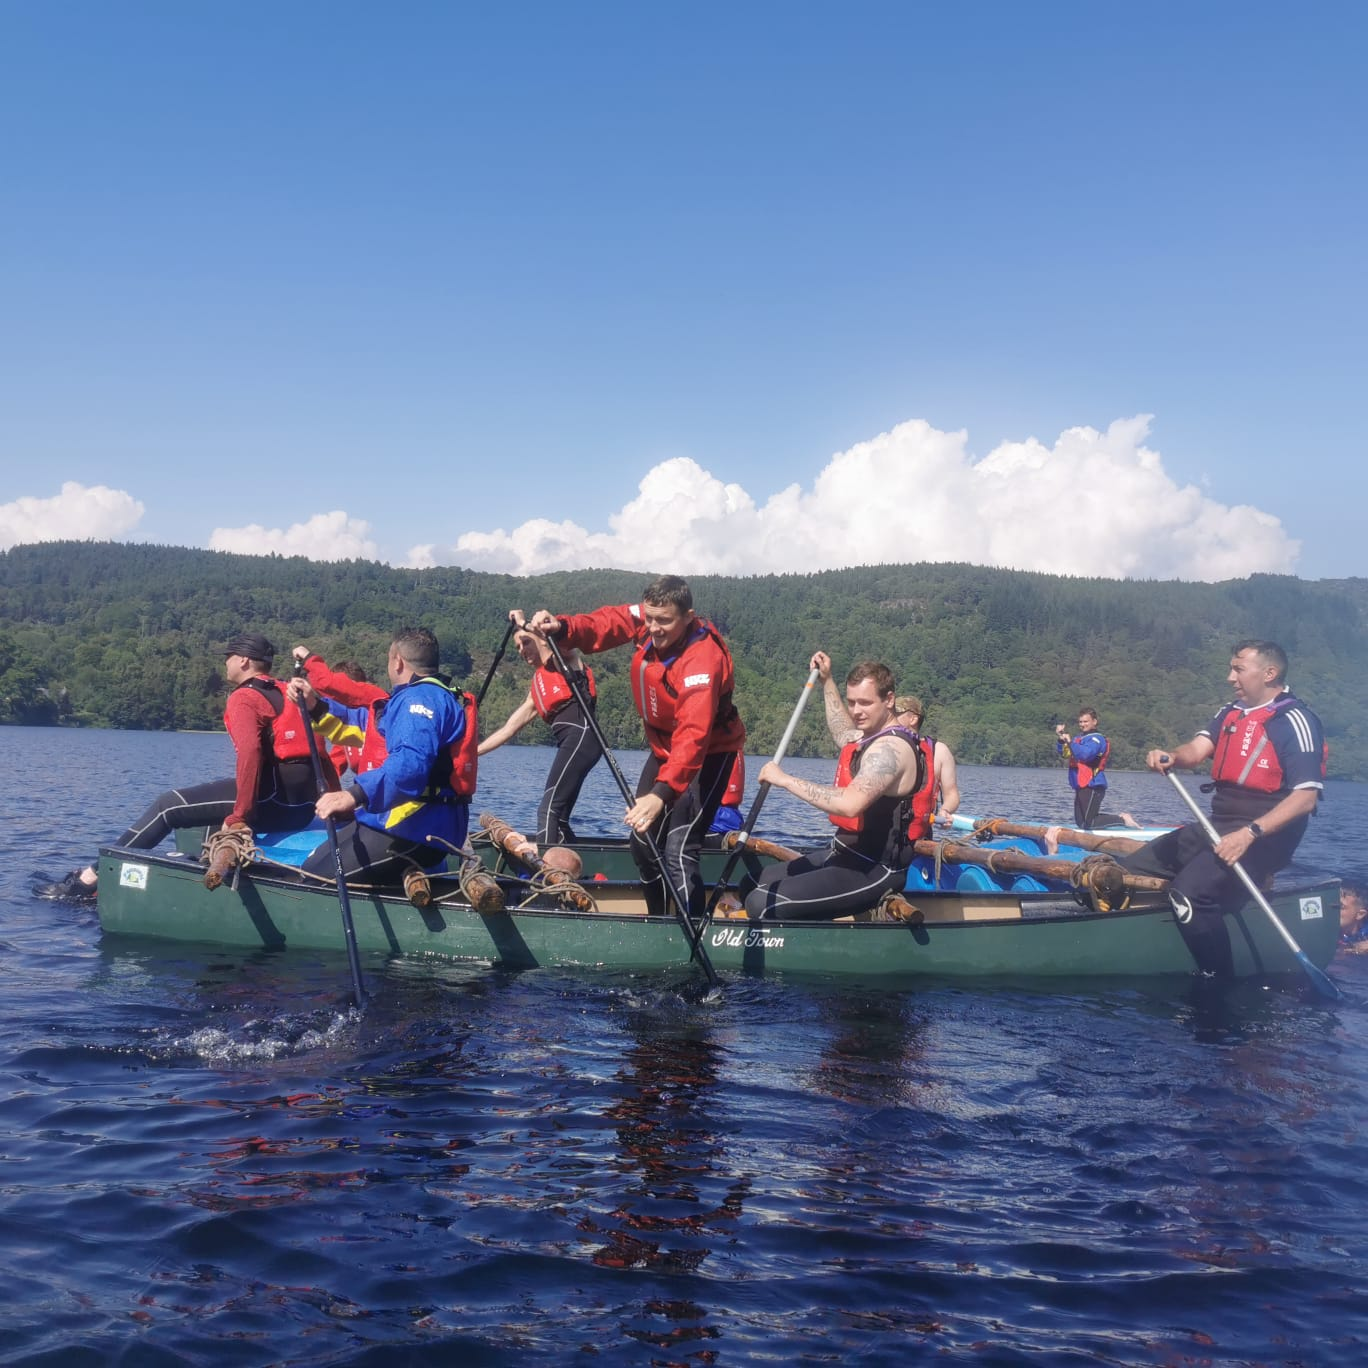 Improvised rafting at Loch Achilty with Fairburn activity centre.